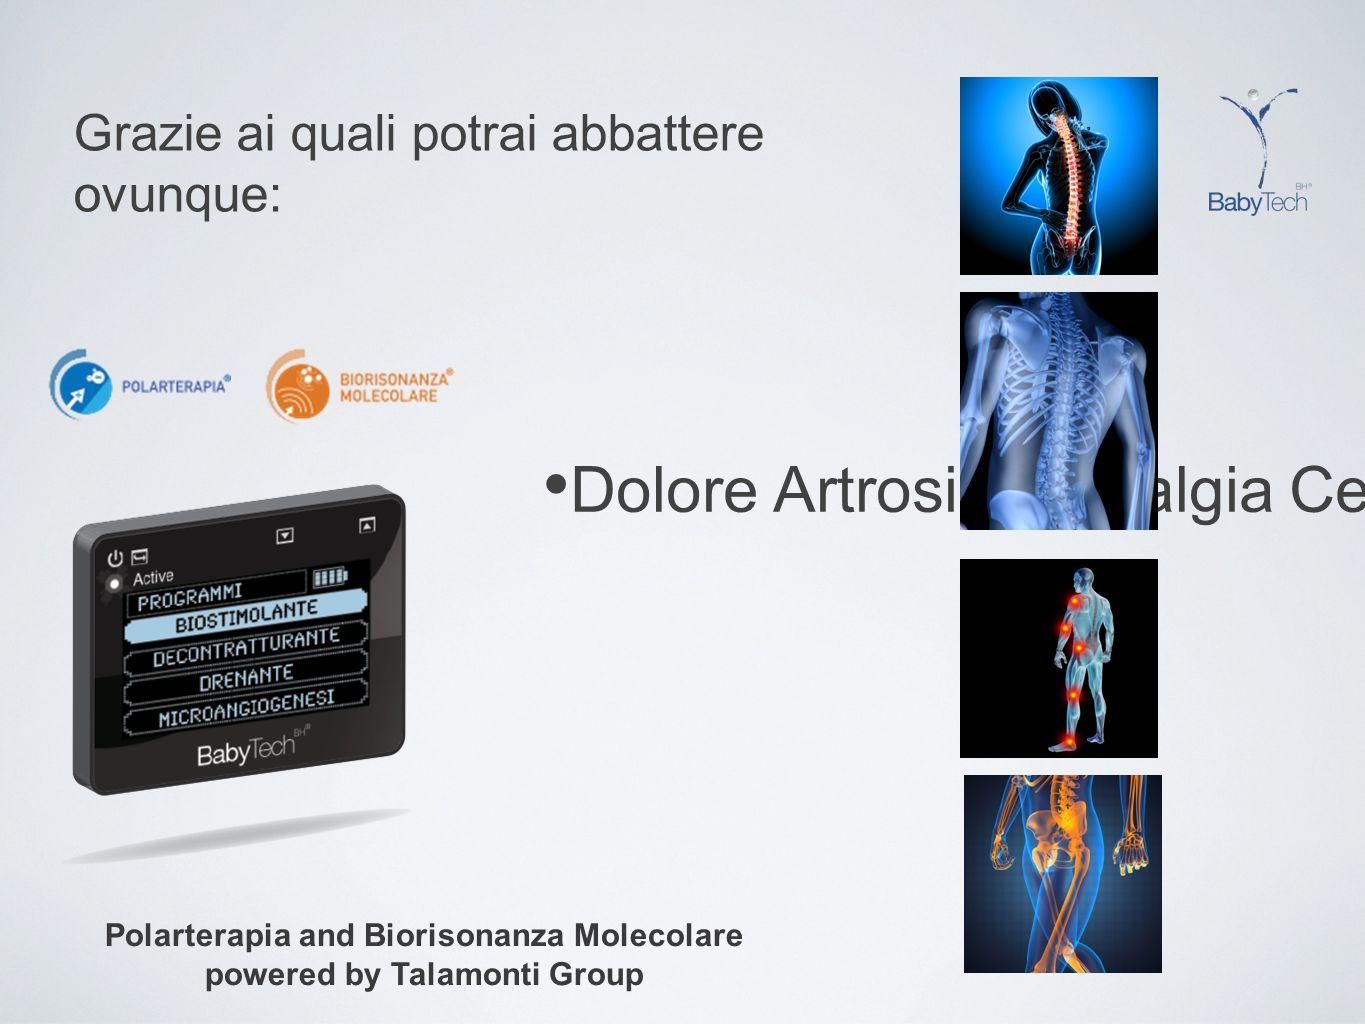 Polarterapia and Biorisonanza Molecolare powered by Talamonti Group